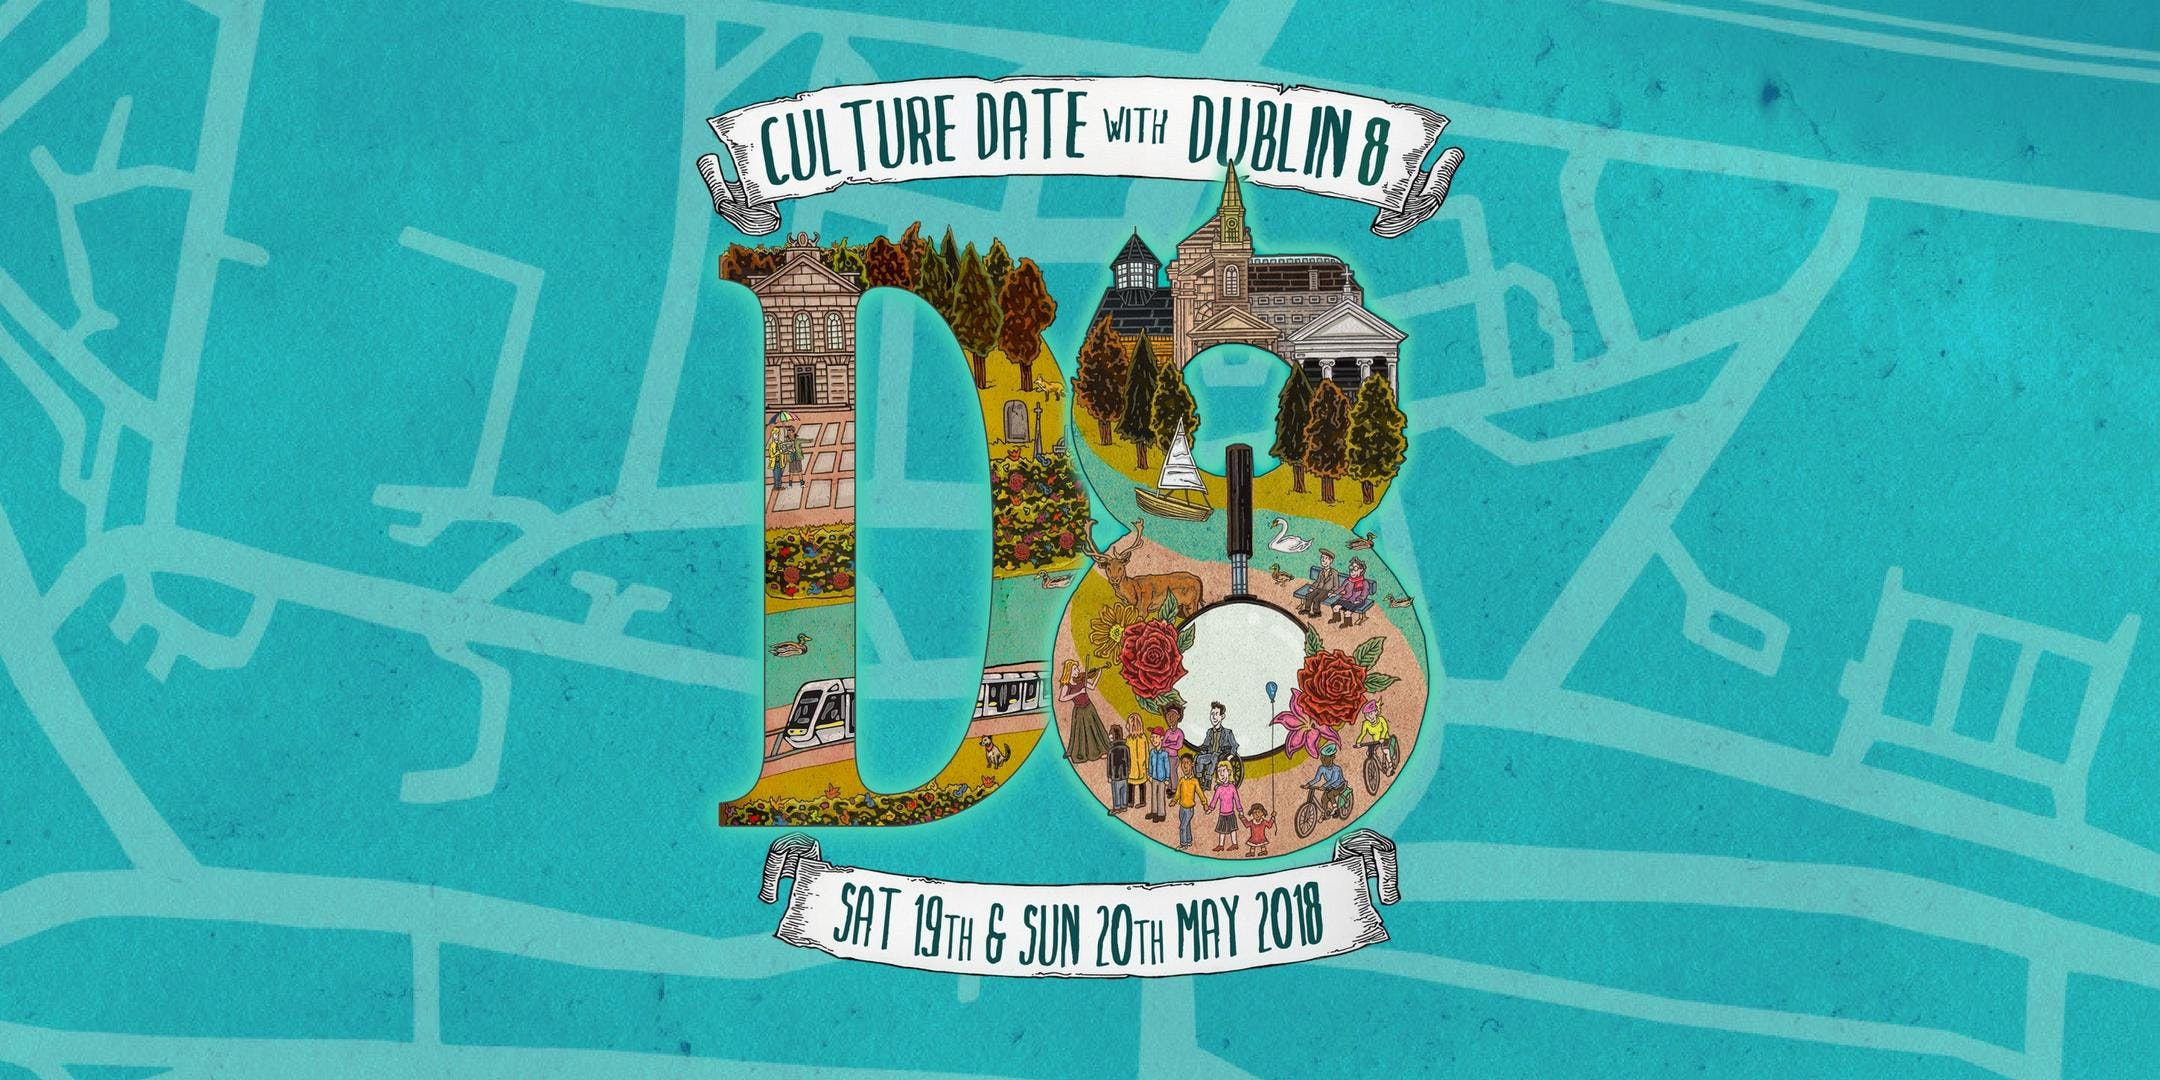 Culture Date with Dublin 8 - May 2018